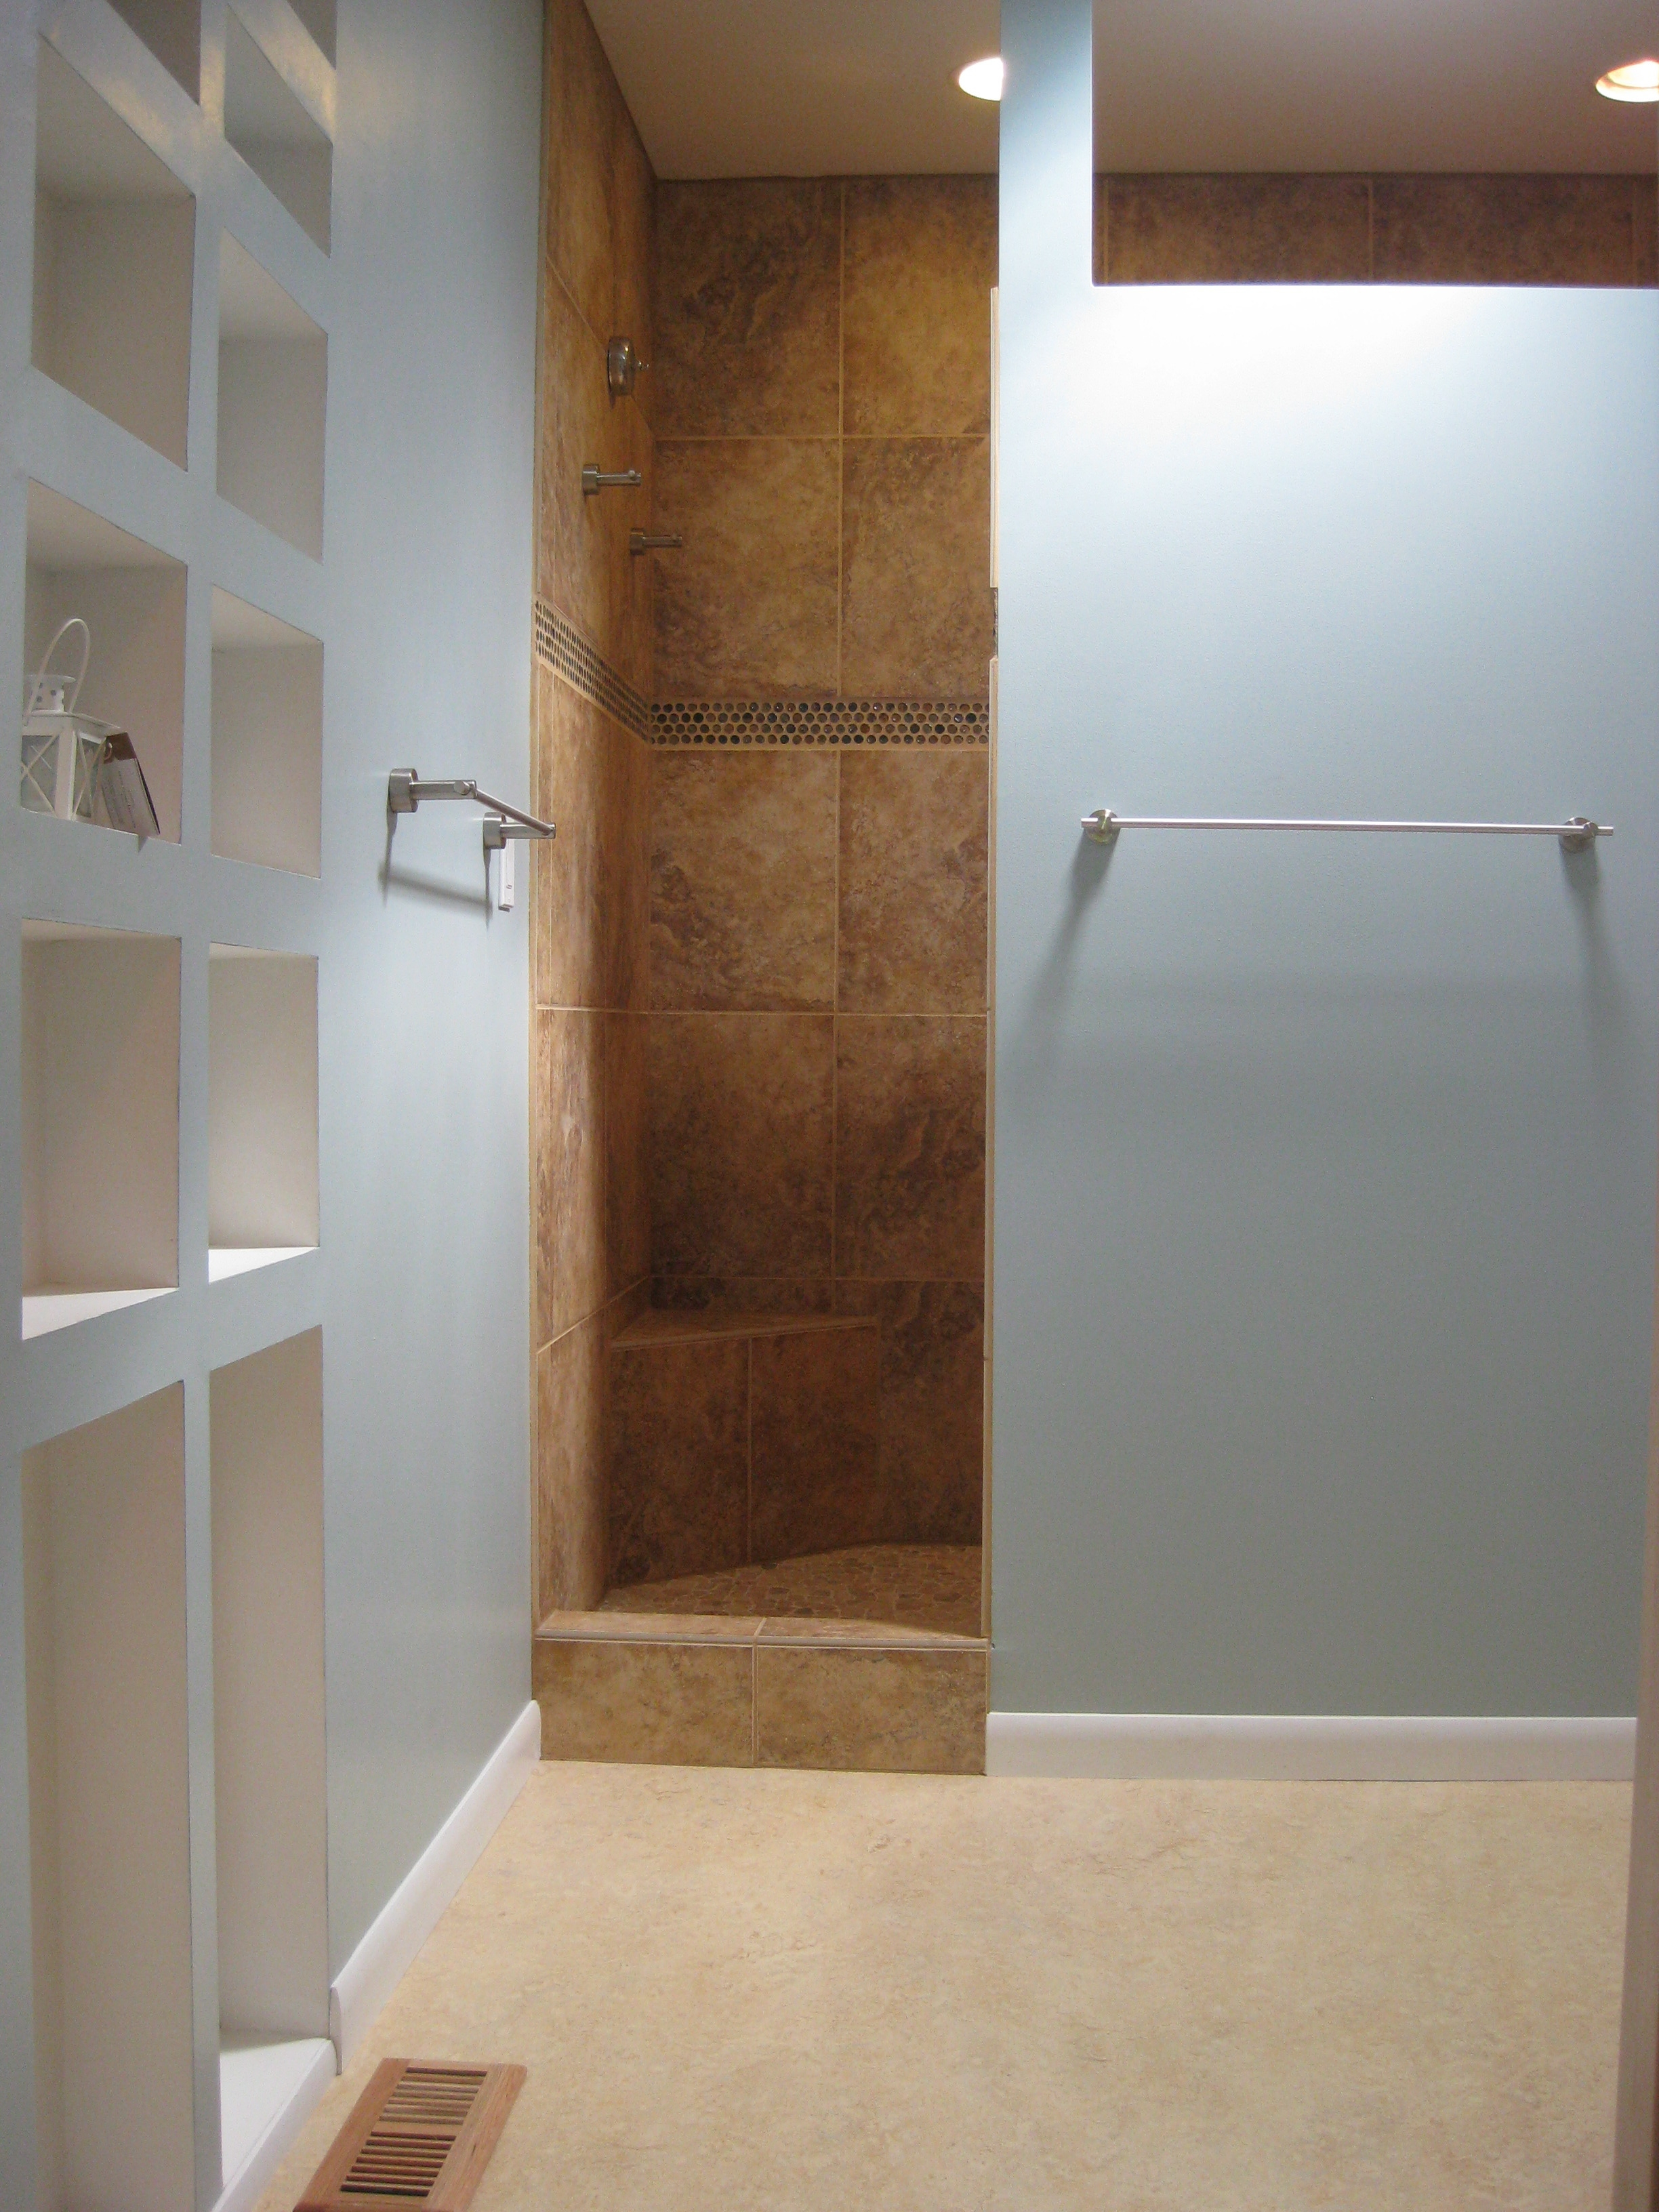 No Glass Shower Doorsabout bathroom shower doors polished of including walk in no door